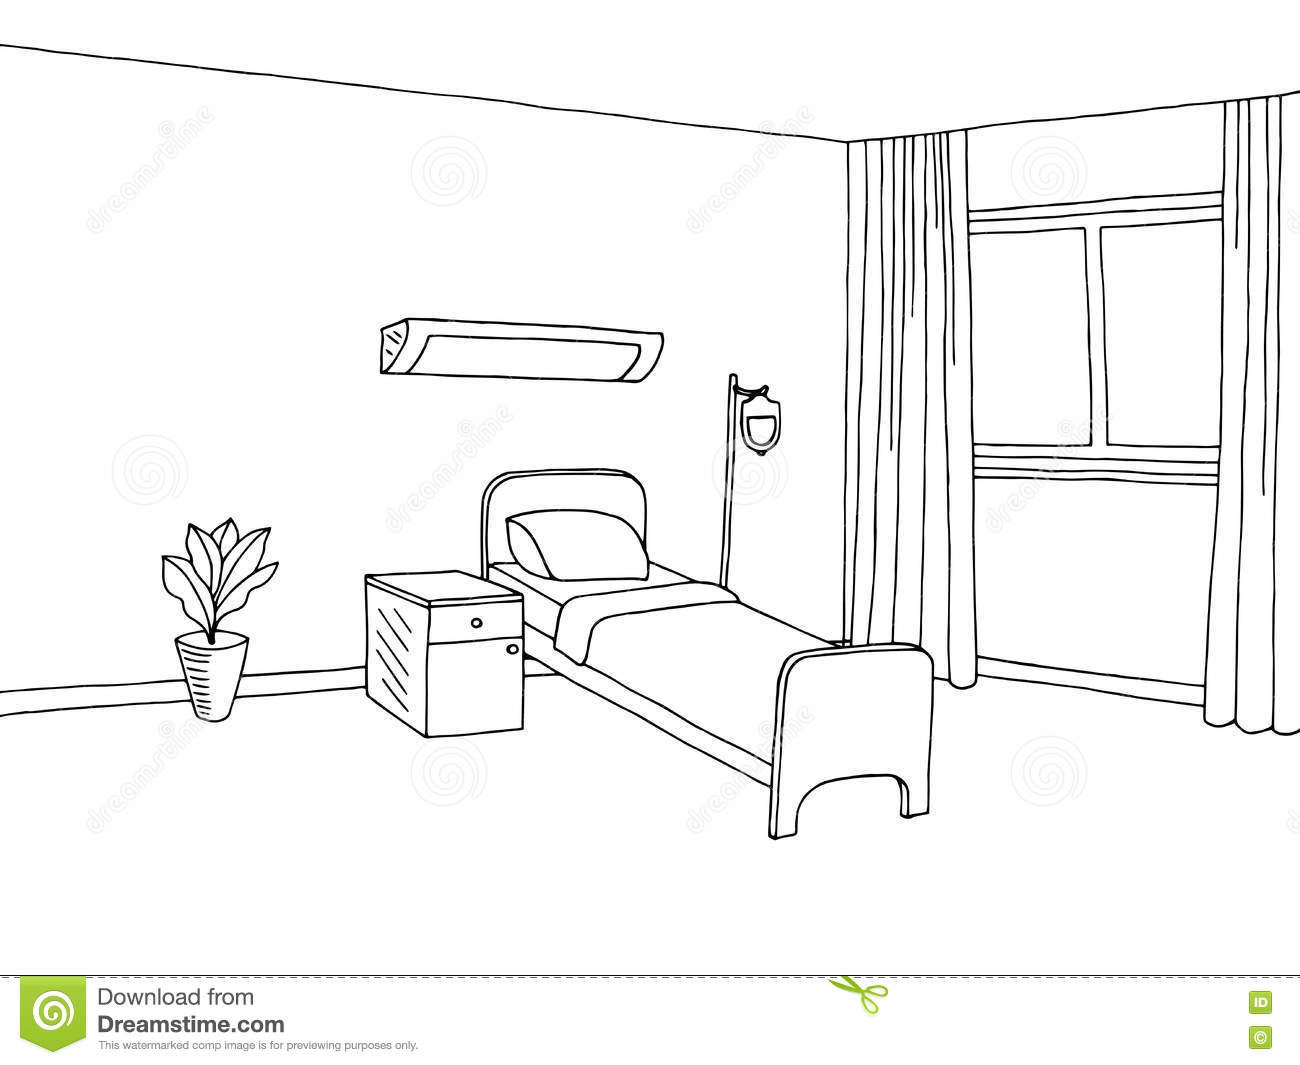 Hospital room coloring pages